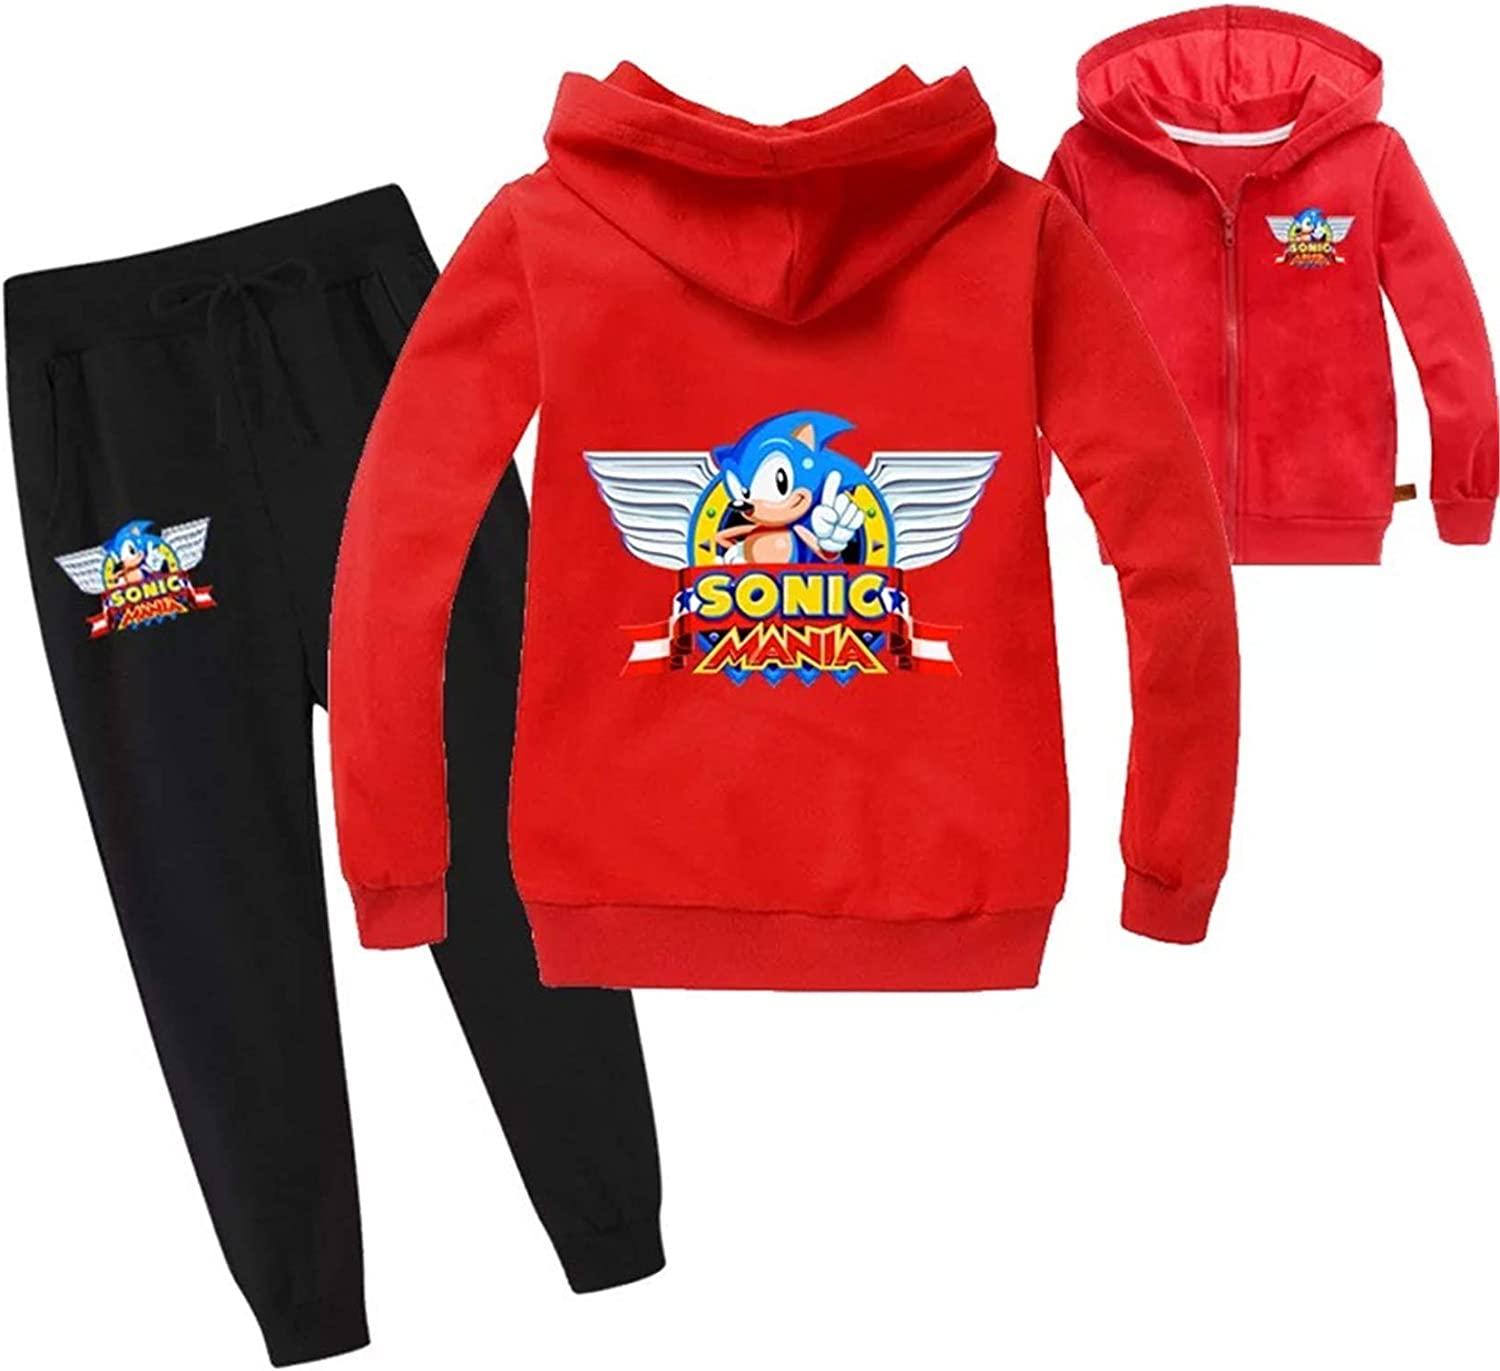 Col-92 Kids Boys Sonic The Hedgehog Zipper Jackets and Sweatpants Set,Child Pull on Hoodies,Graphic Sweatshirts with Hood